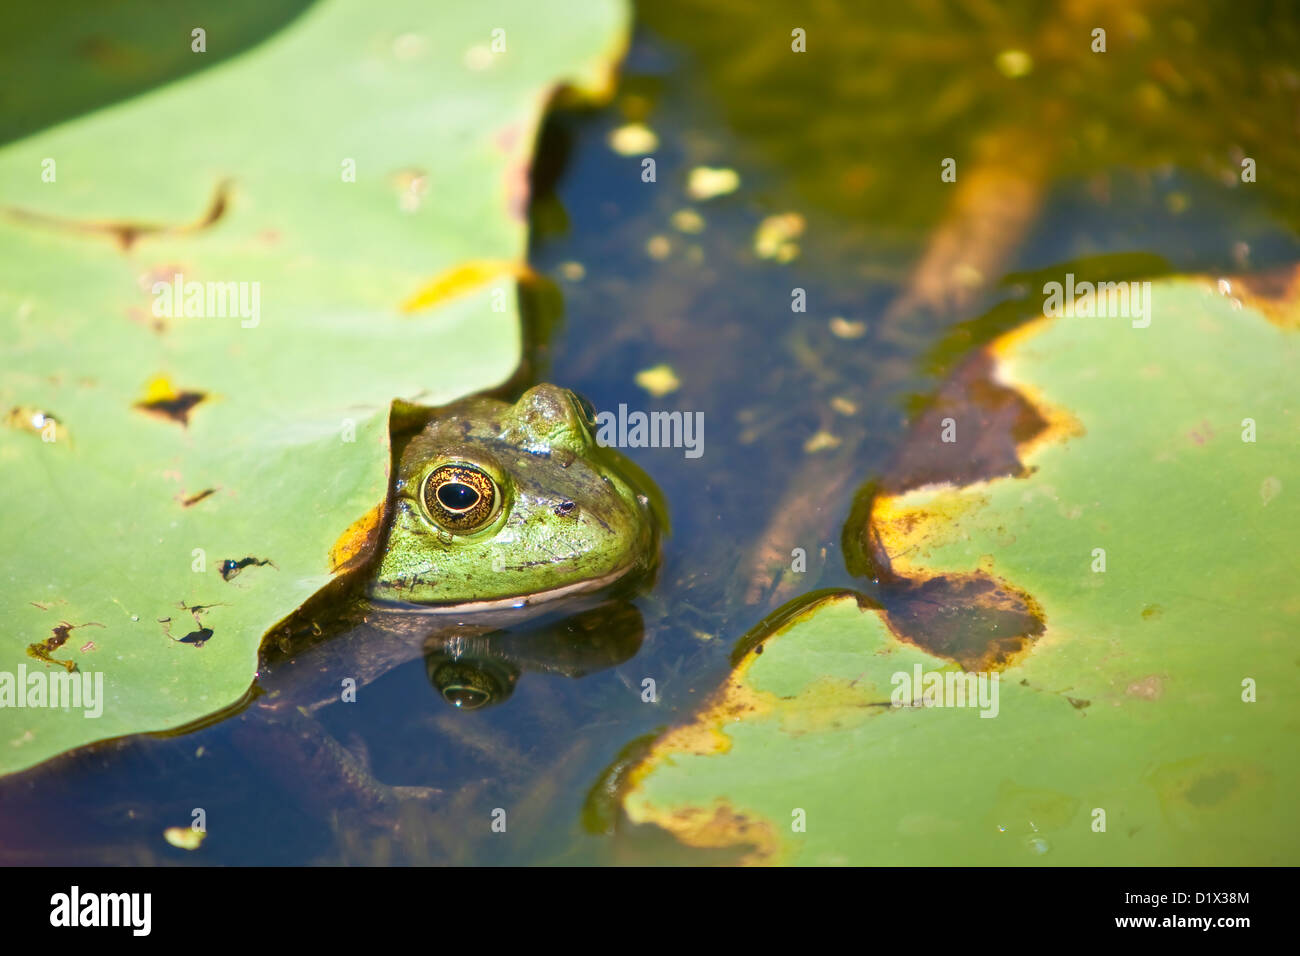 frog in pond with lily pads - Stock Image